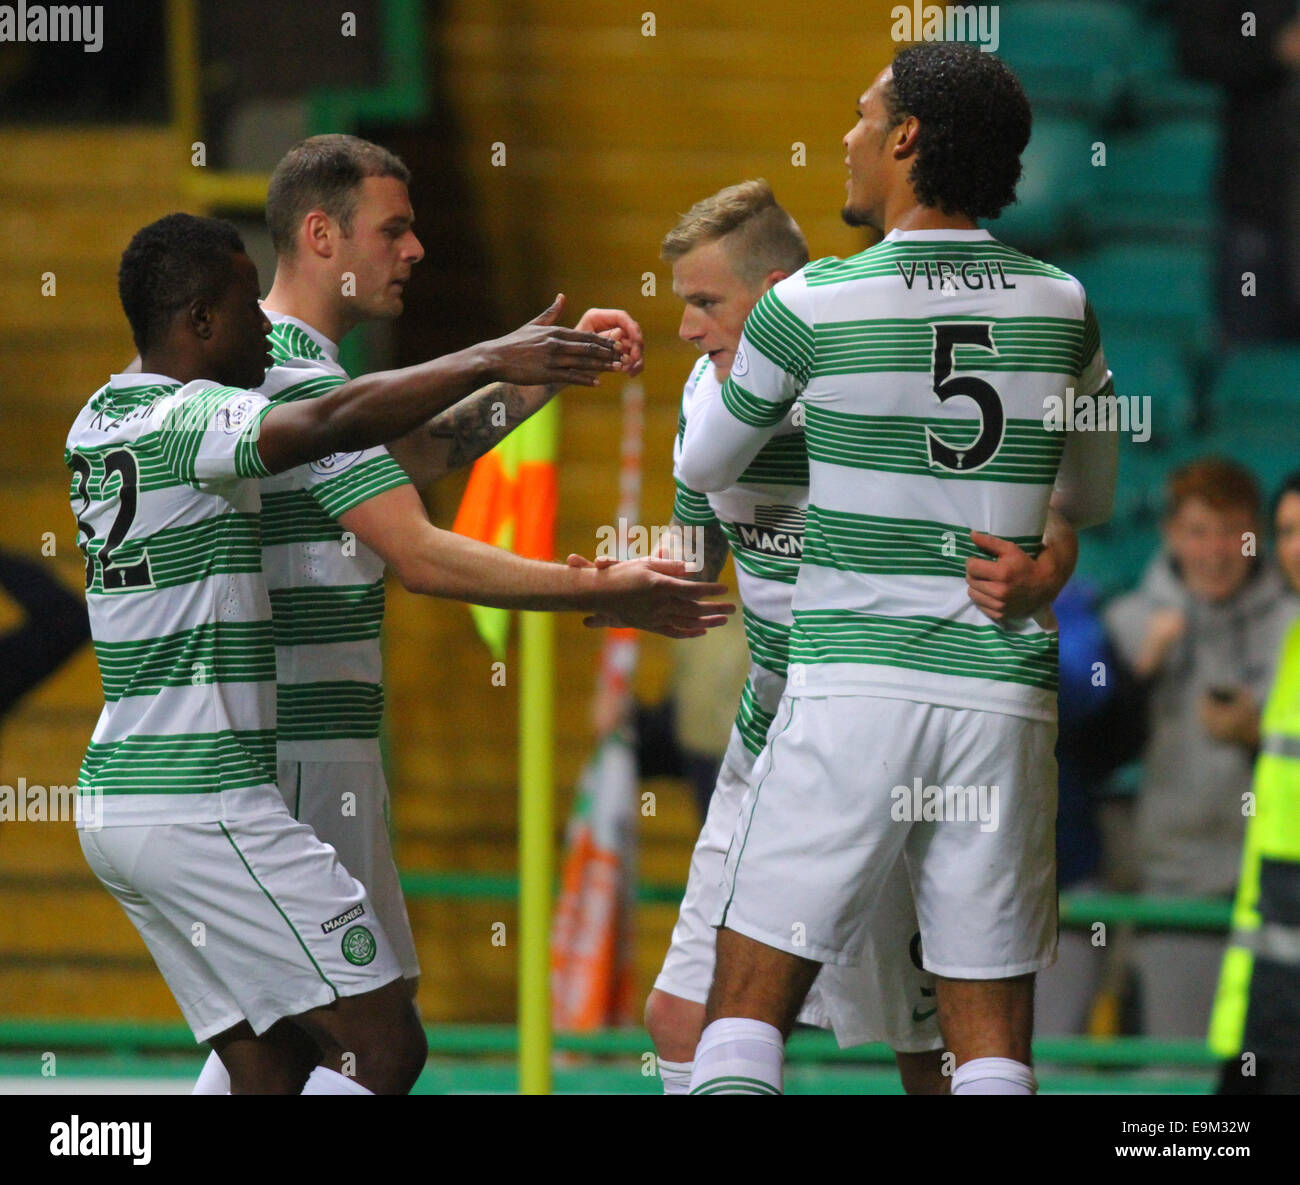 Glasgow, Scotland. 29th Oct, 2014. Scottish League Cup. Celtic versus Partick Thistle. John Guidetti celebrates - Stock Image